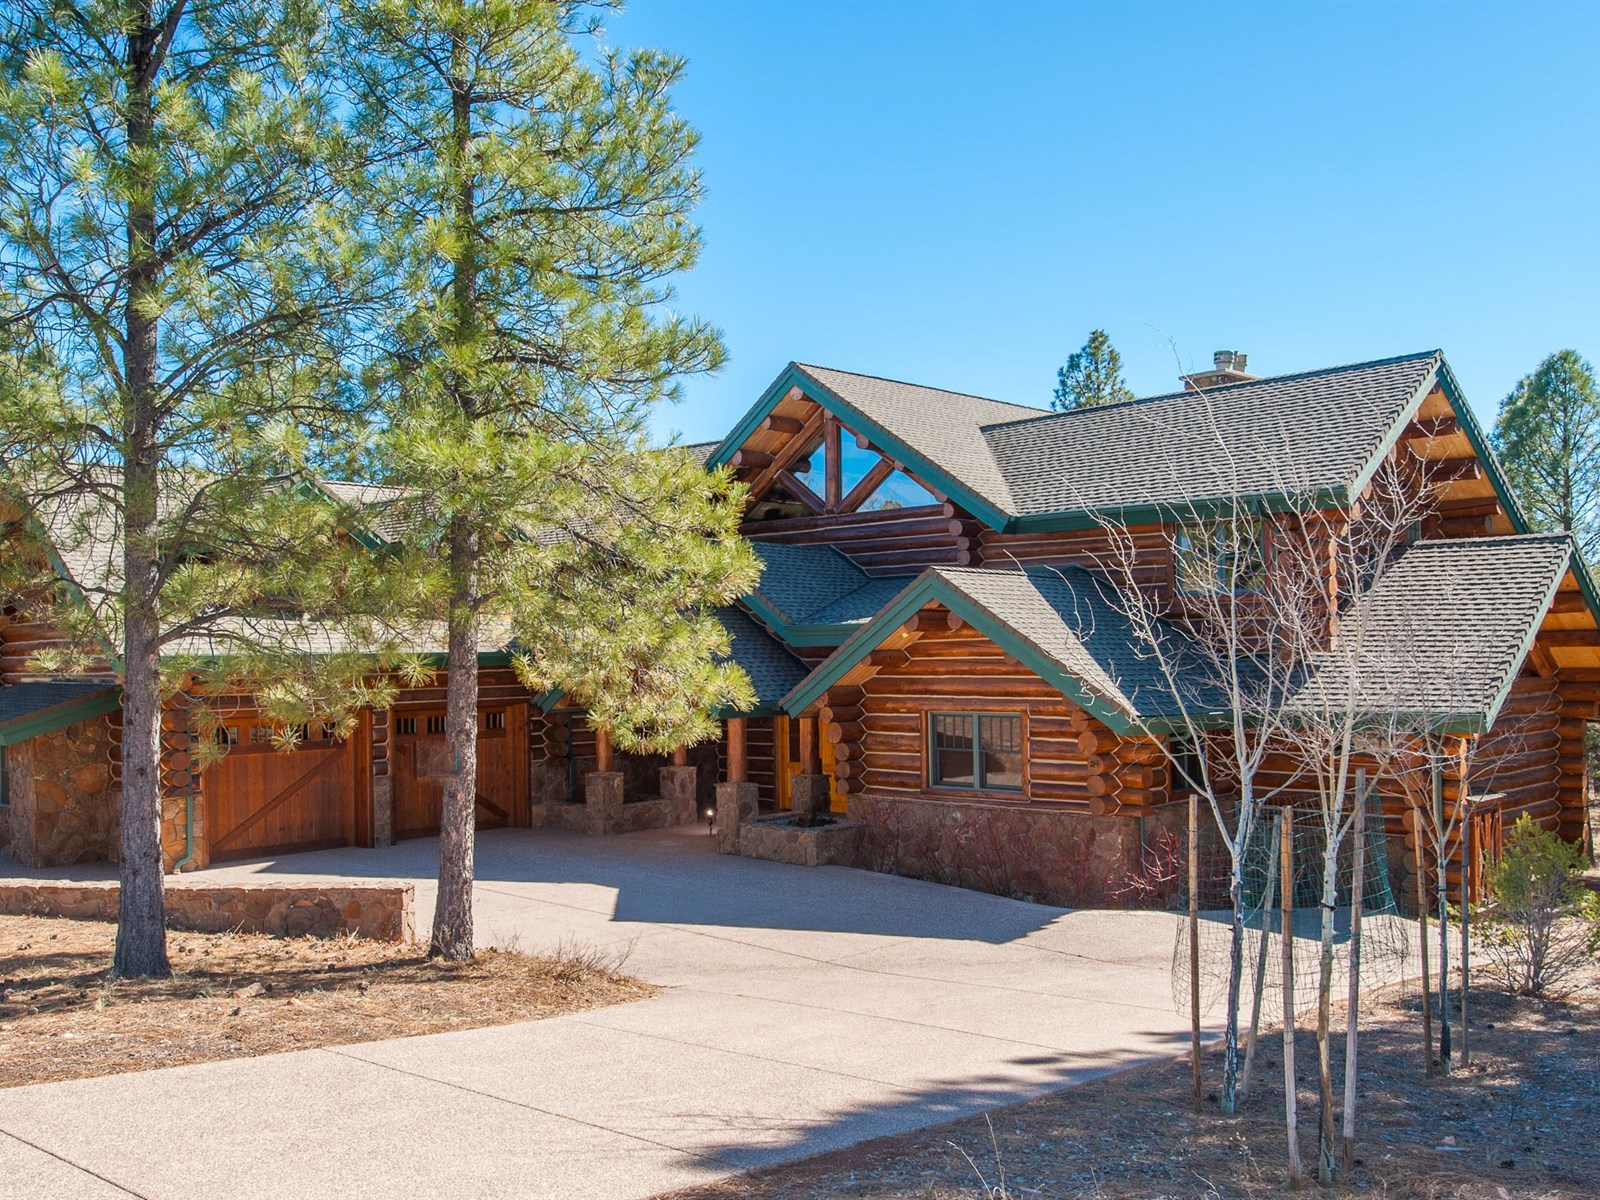 Maison unifamiliale pour l Vente à Luxurious Hand Crafted Log Home 3609 S Clubhouse CIR Flagstaff, Arizona 86005 États-Unis